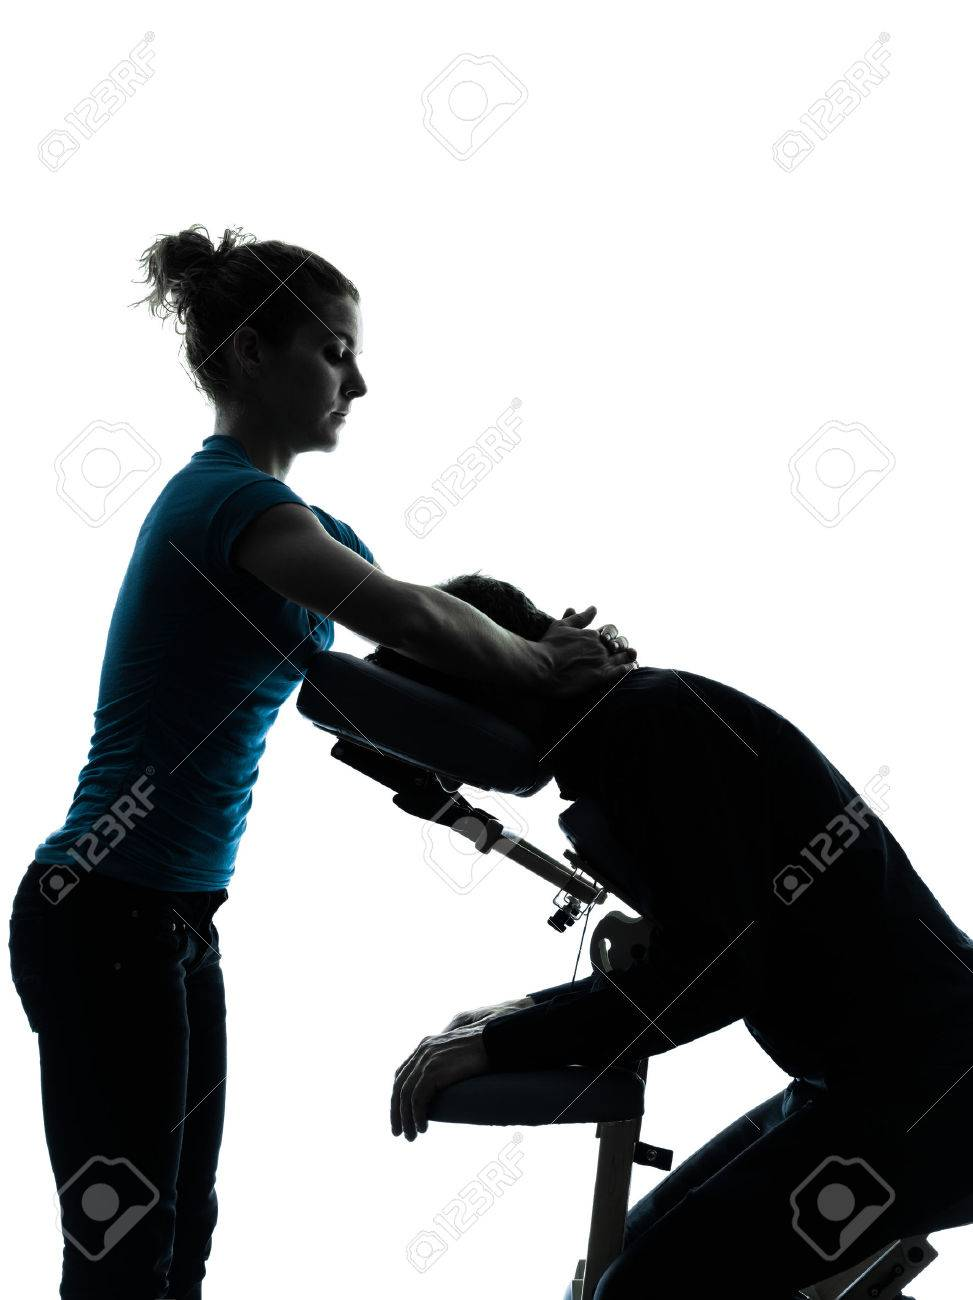 Chair massage therapy - One Man And Woman Performing Chair Massage In Silhouette Studio On White Background